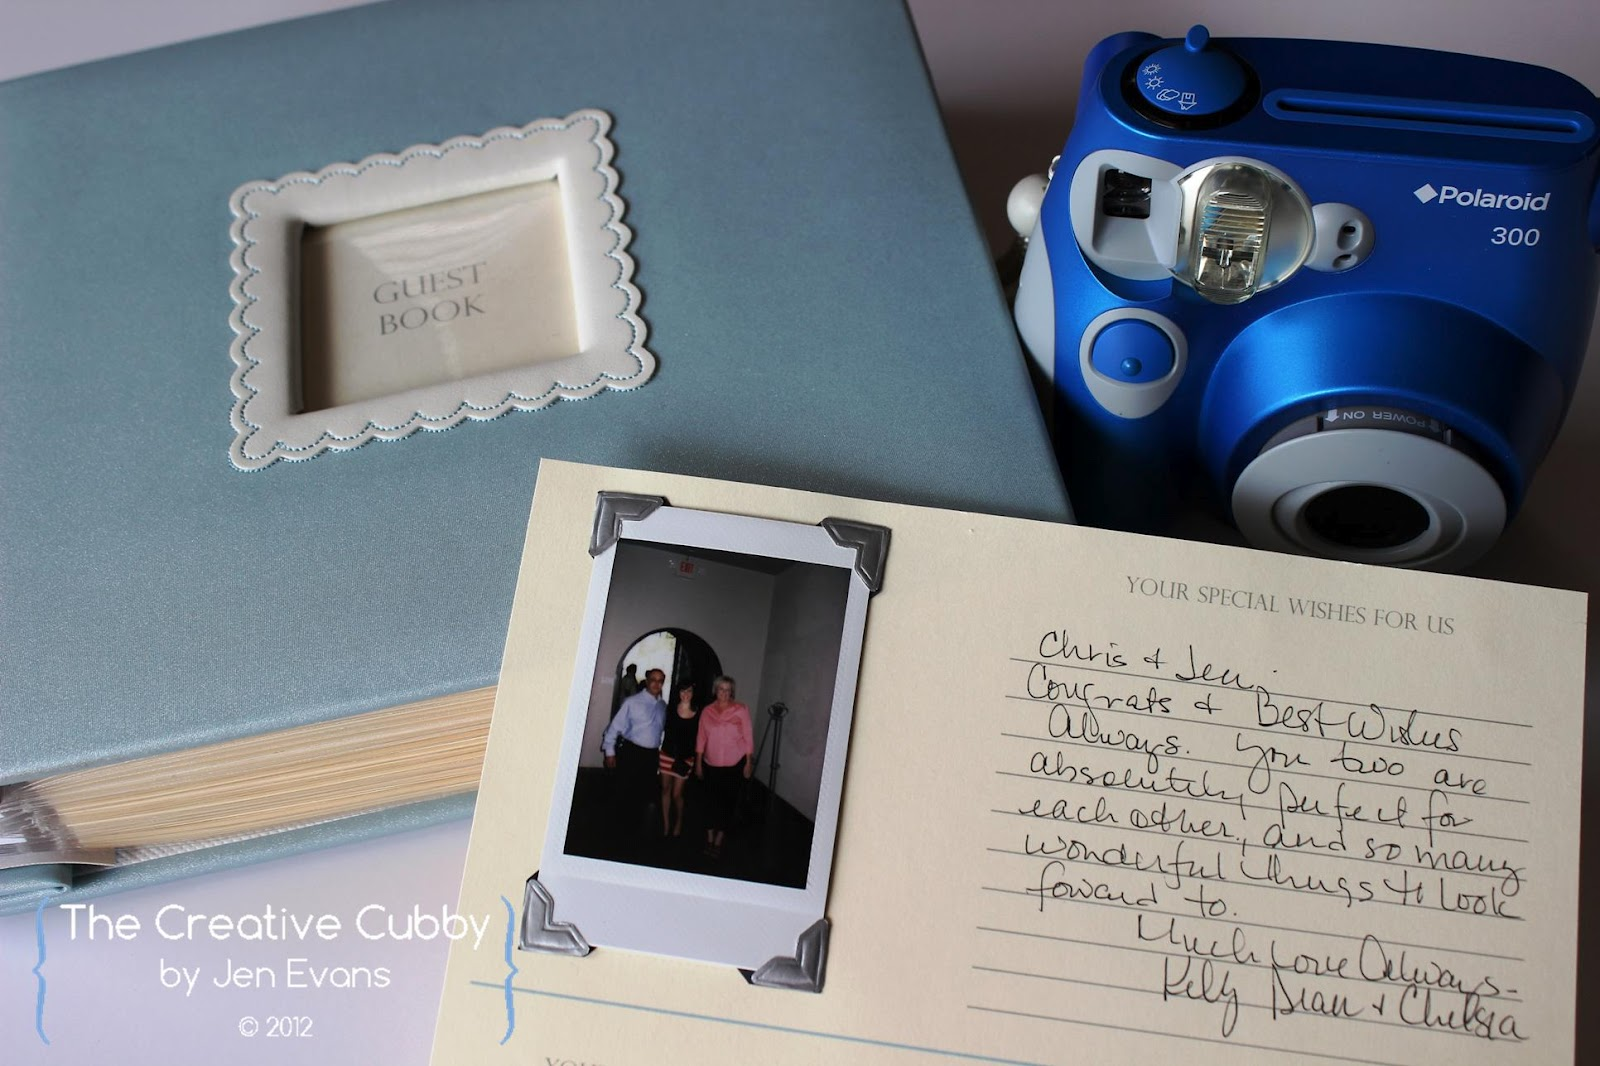 Polaroid Wedding Guest Book.The Creative Cubby Polaroid Wedding Guest Book